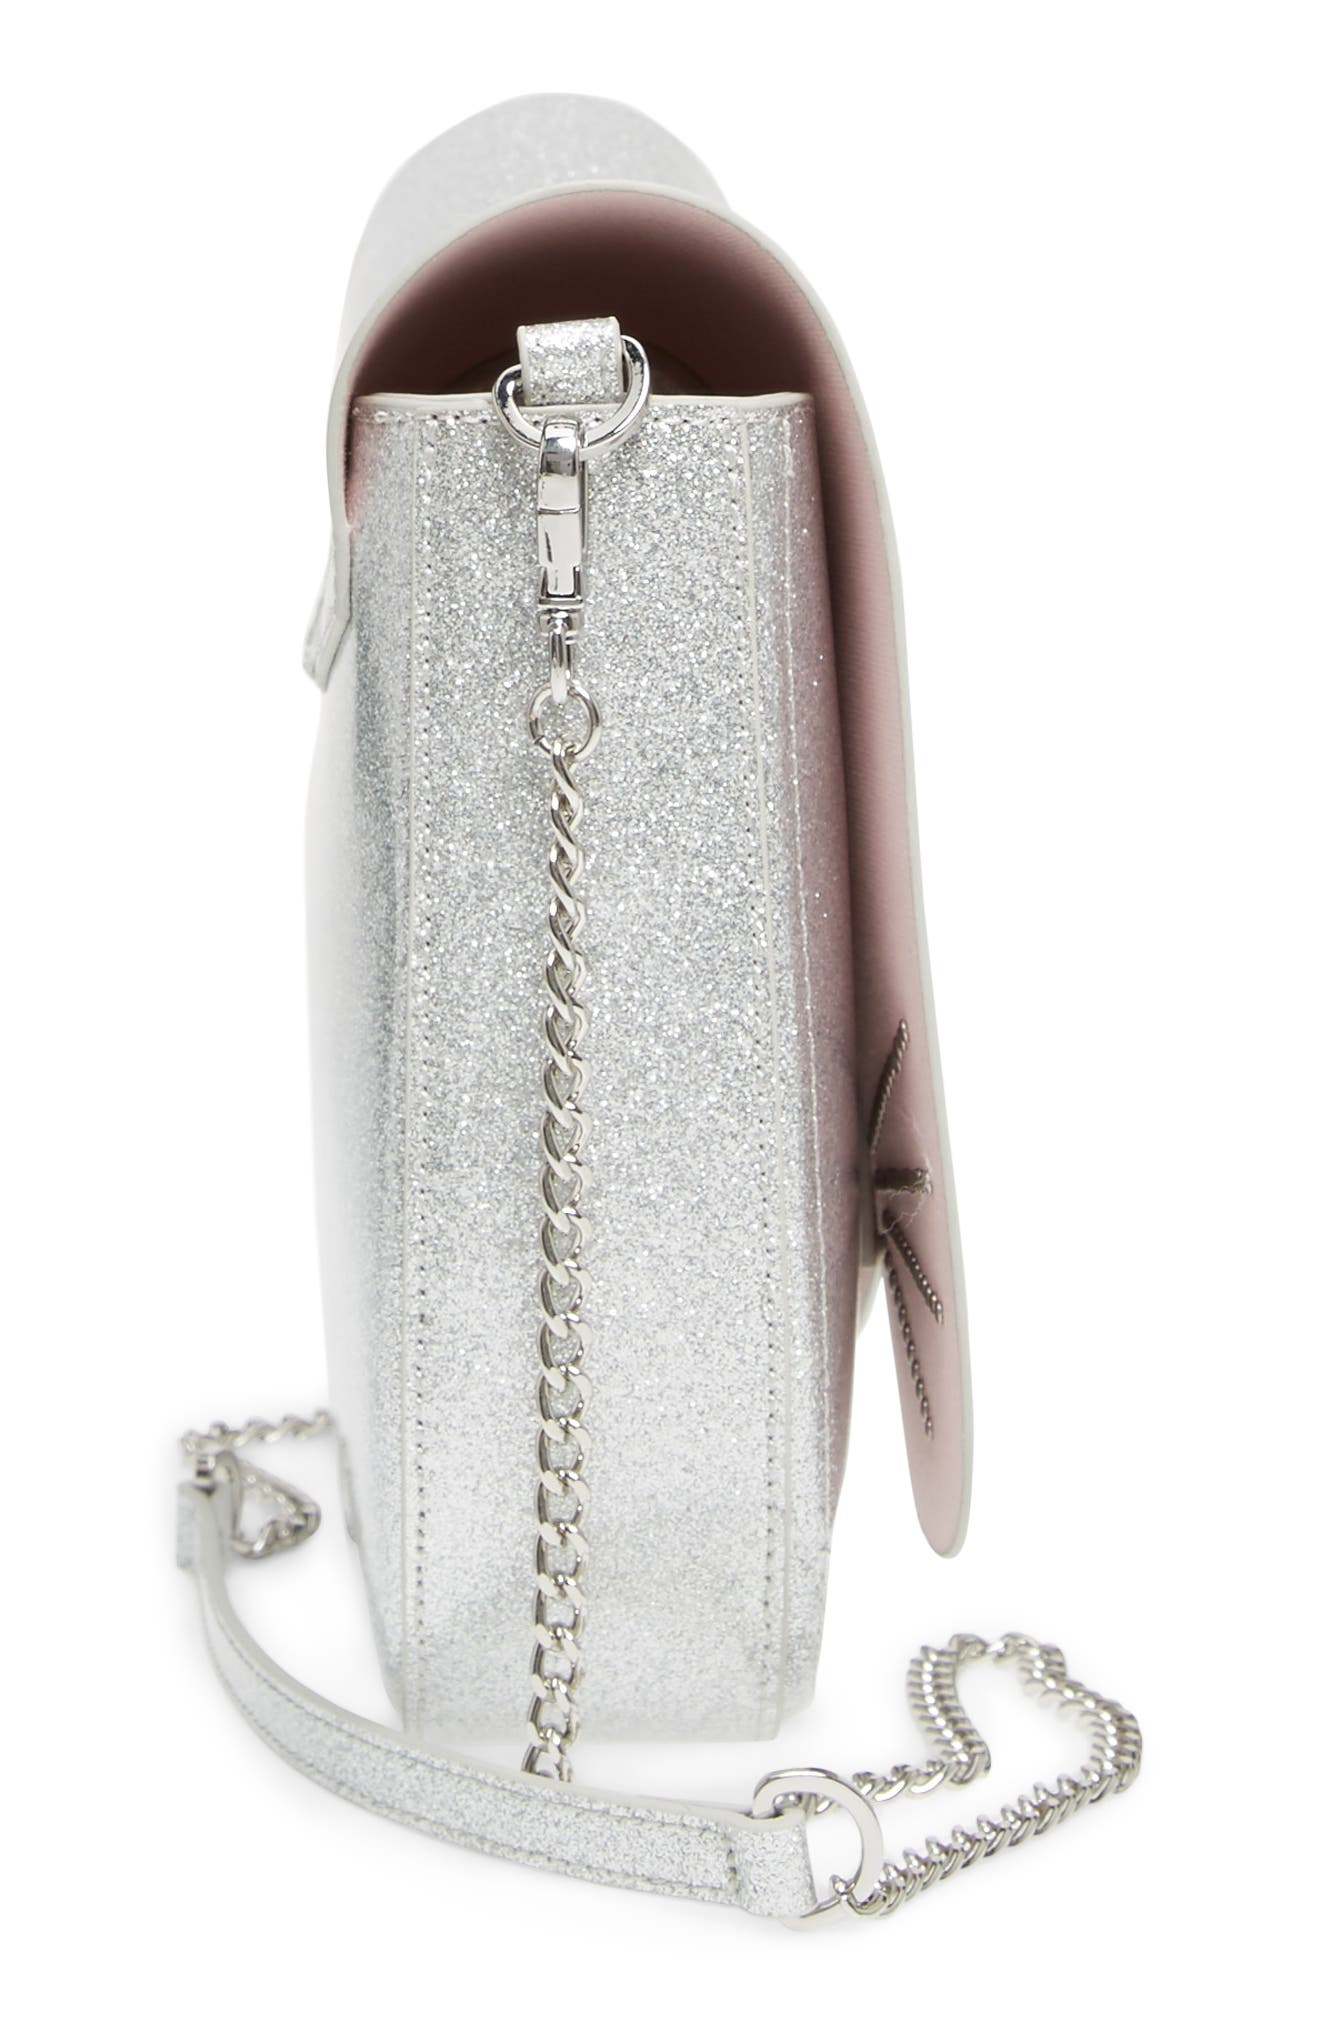 Hildaa Glitter Faux Leather Crossbody Bag,                             Alternate thumbnail 5, color,                             Silver